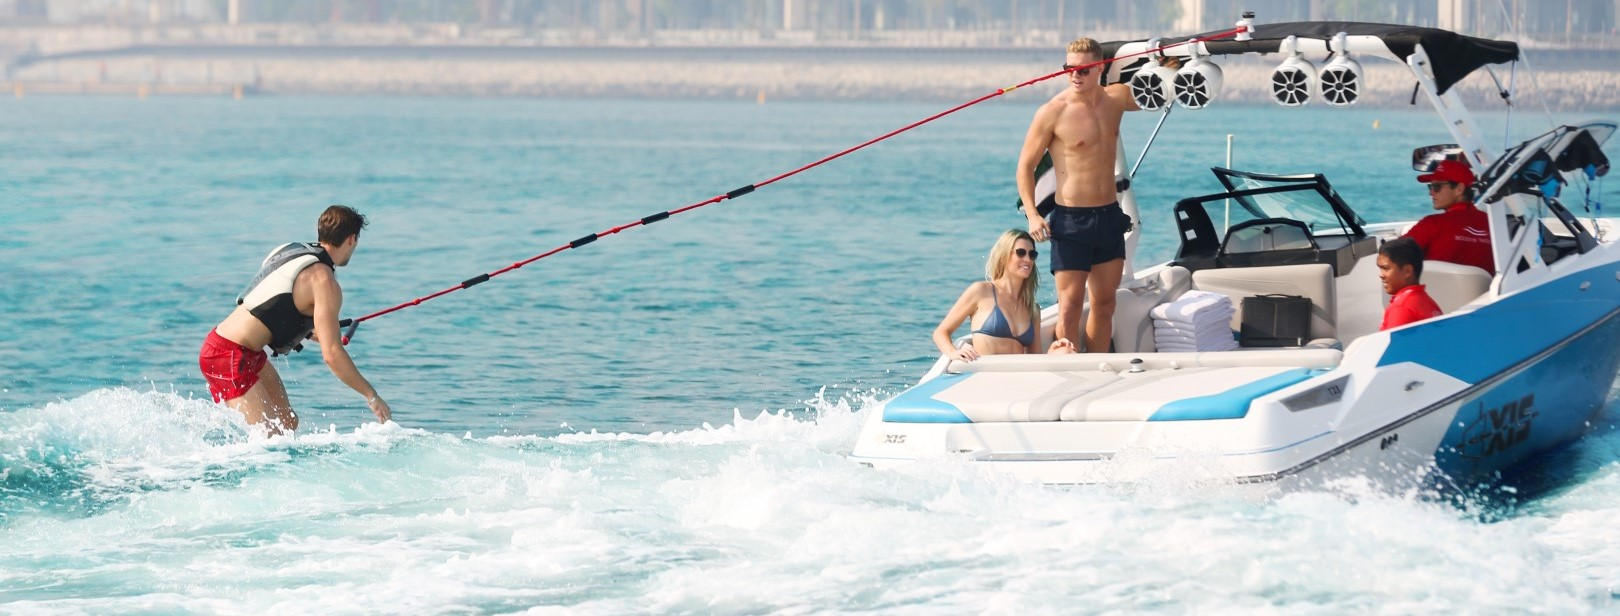 Axis T23 Wake Surfing Dubai